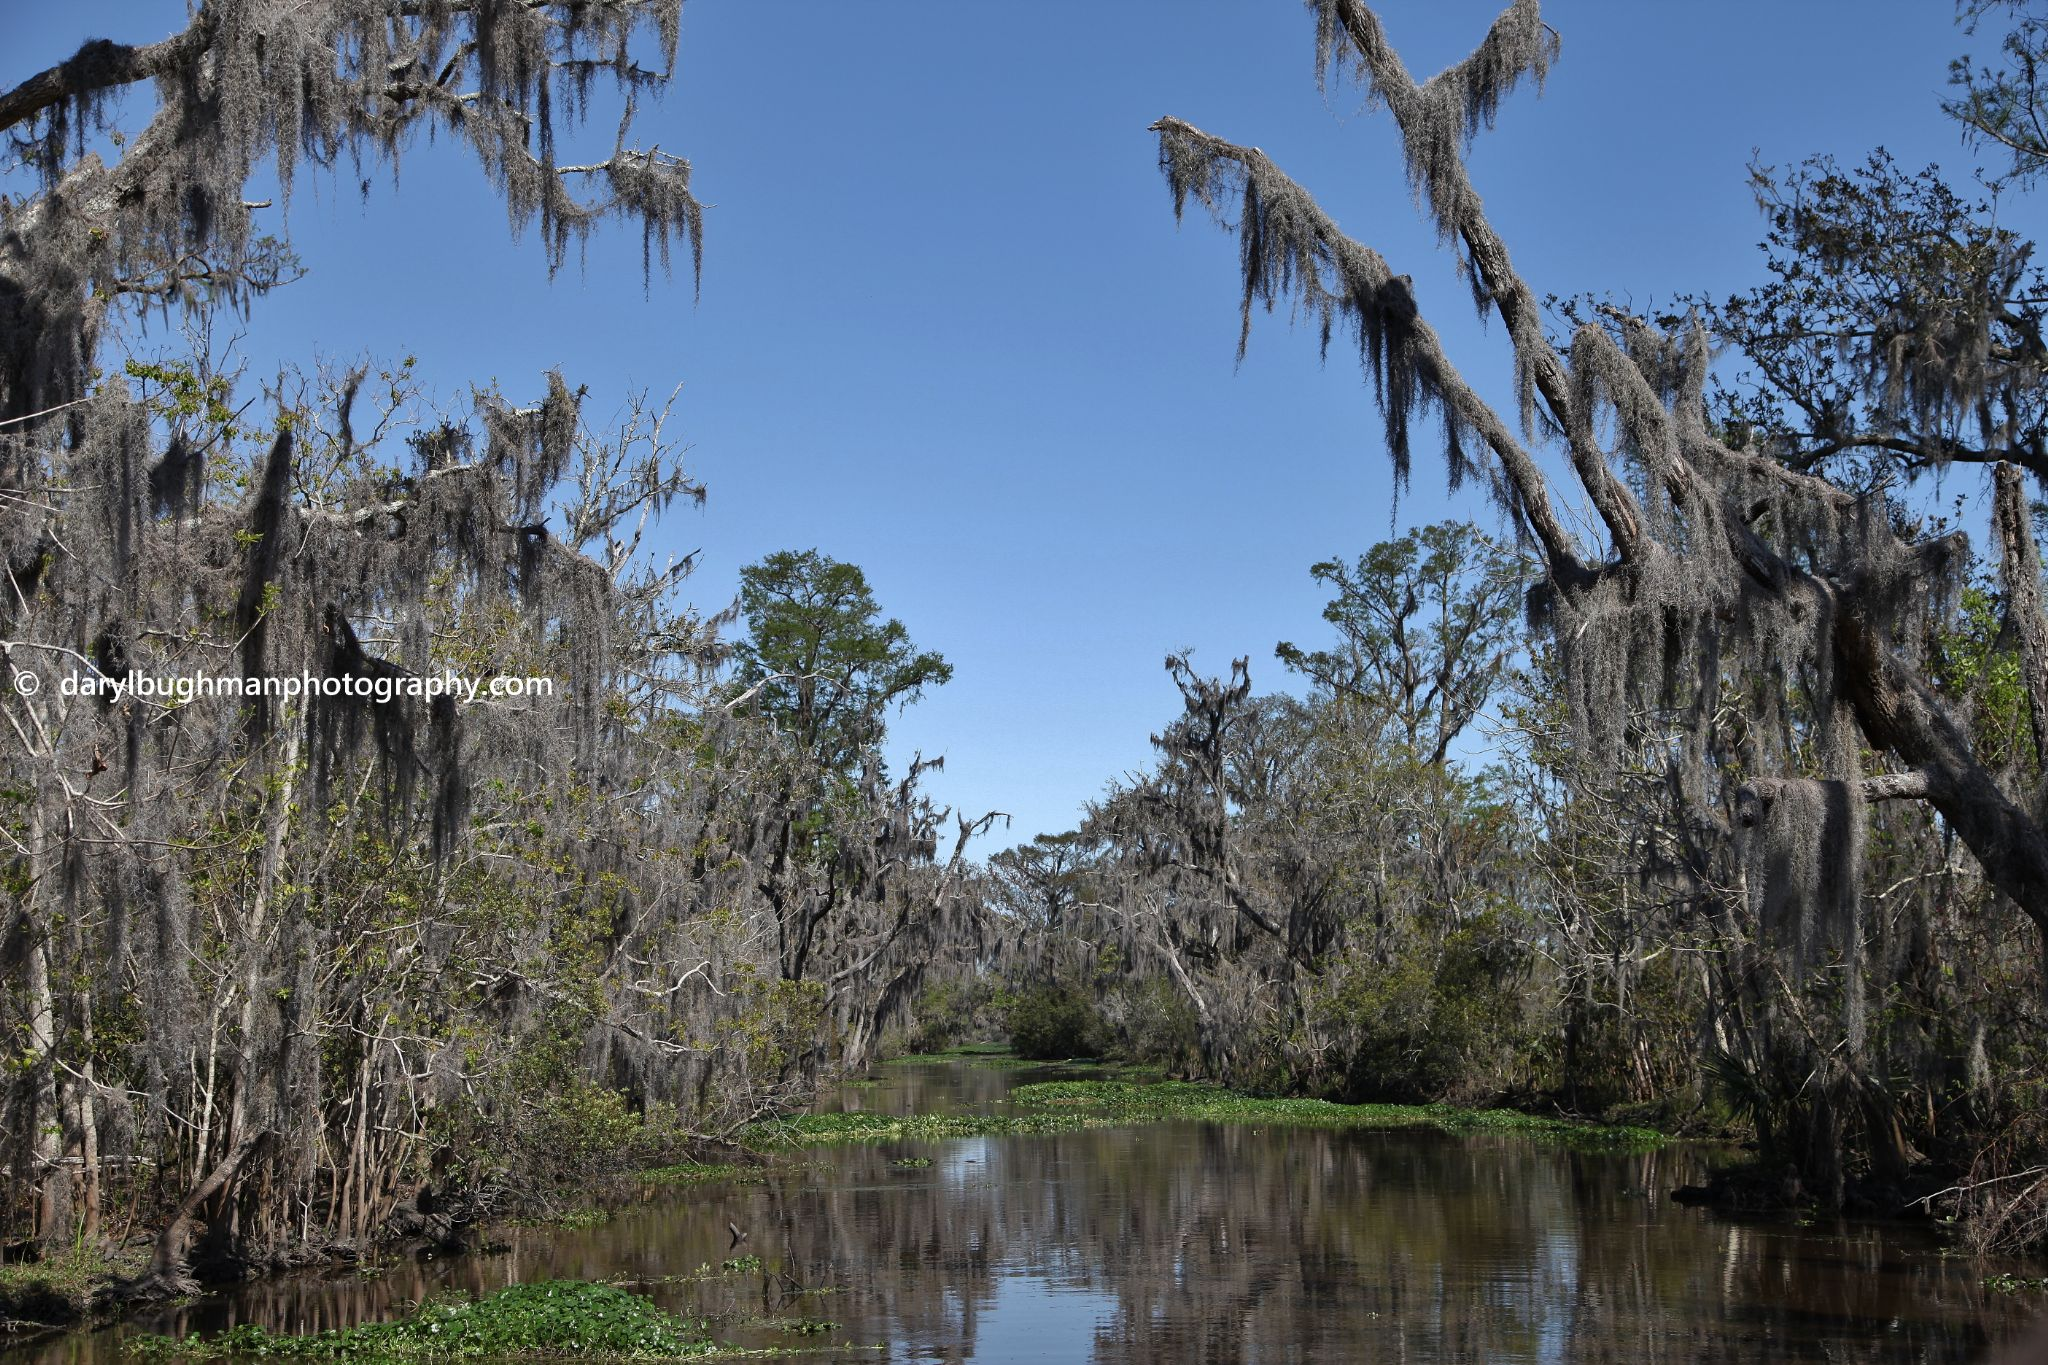 the Bayou by daryl.bughman